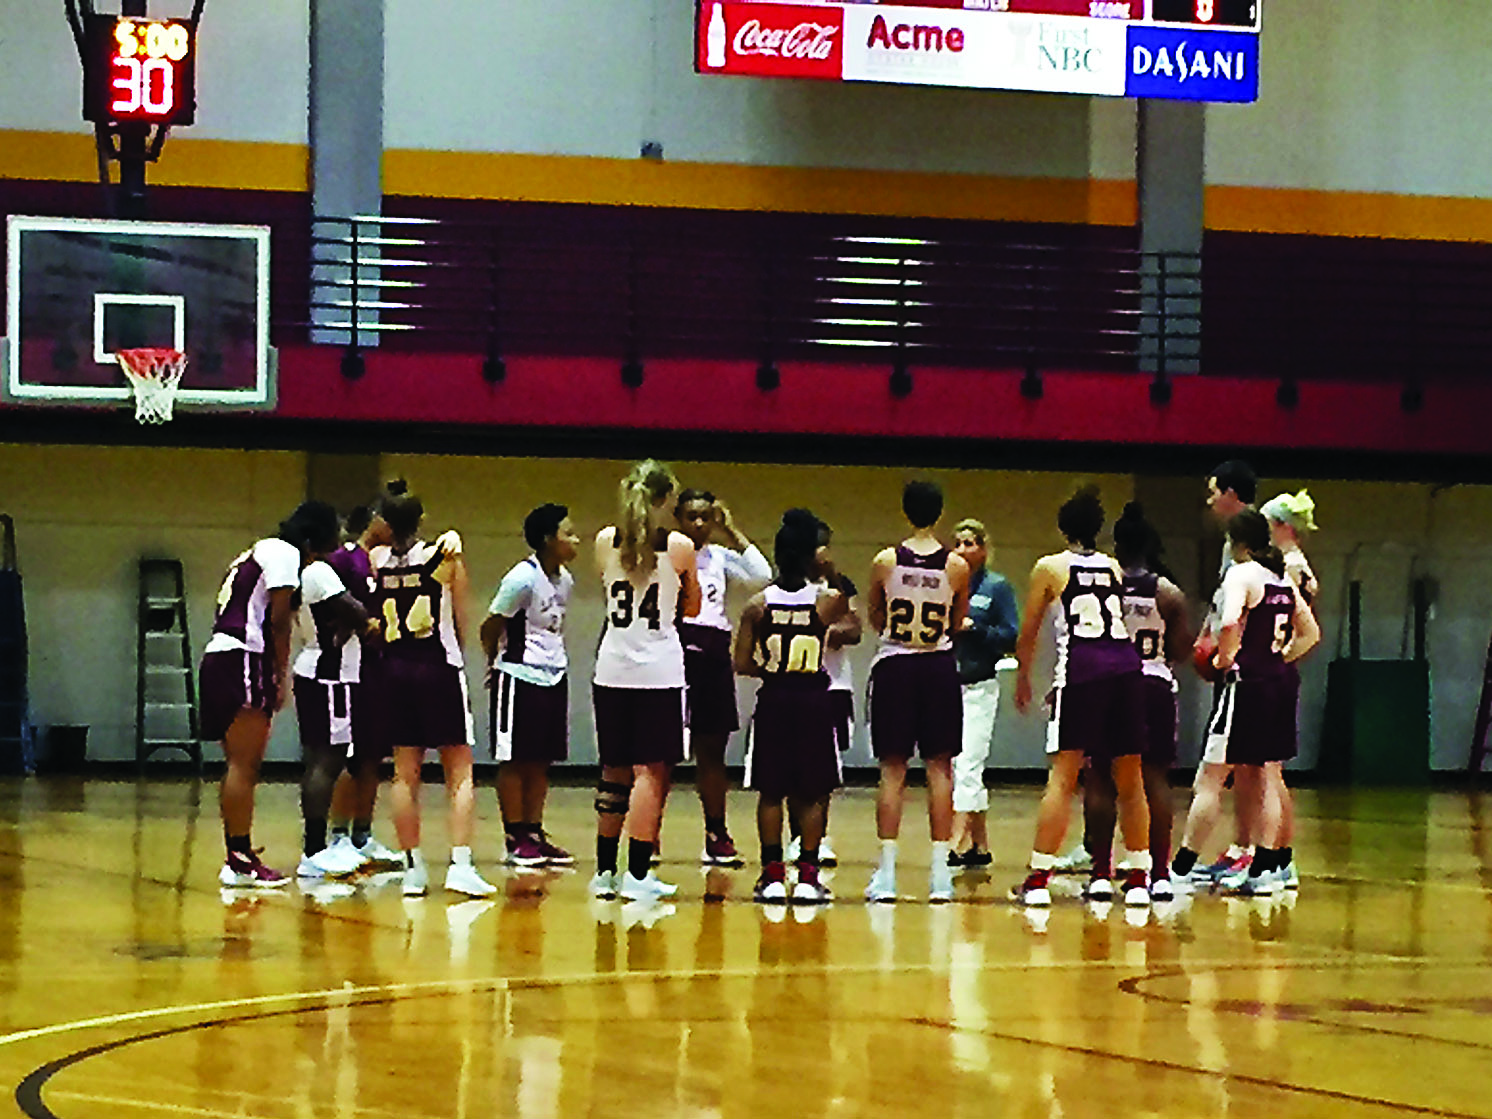 The women's basketball team practices Sept. 20. The team hopes to win a national championship this year. Photo credit: Ryan Micklin